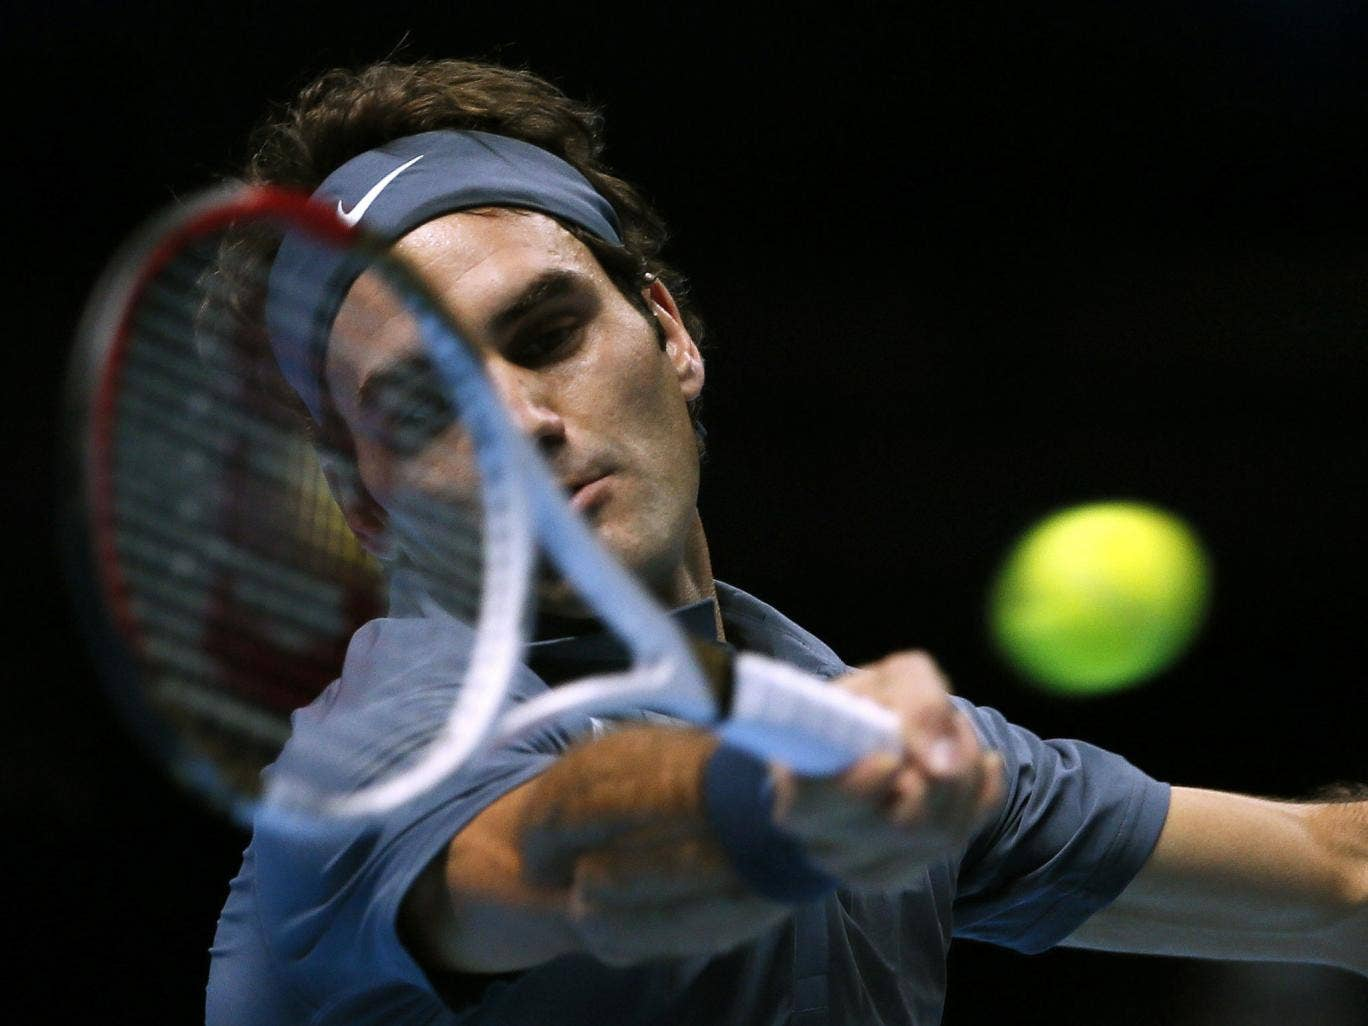 Roger Federer enjoyed a routine victory over Richard Gasquet at the O2 in London